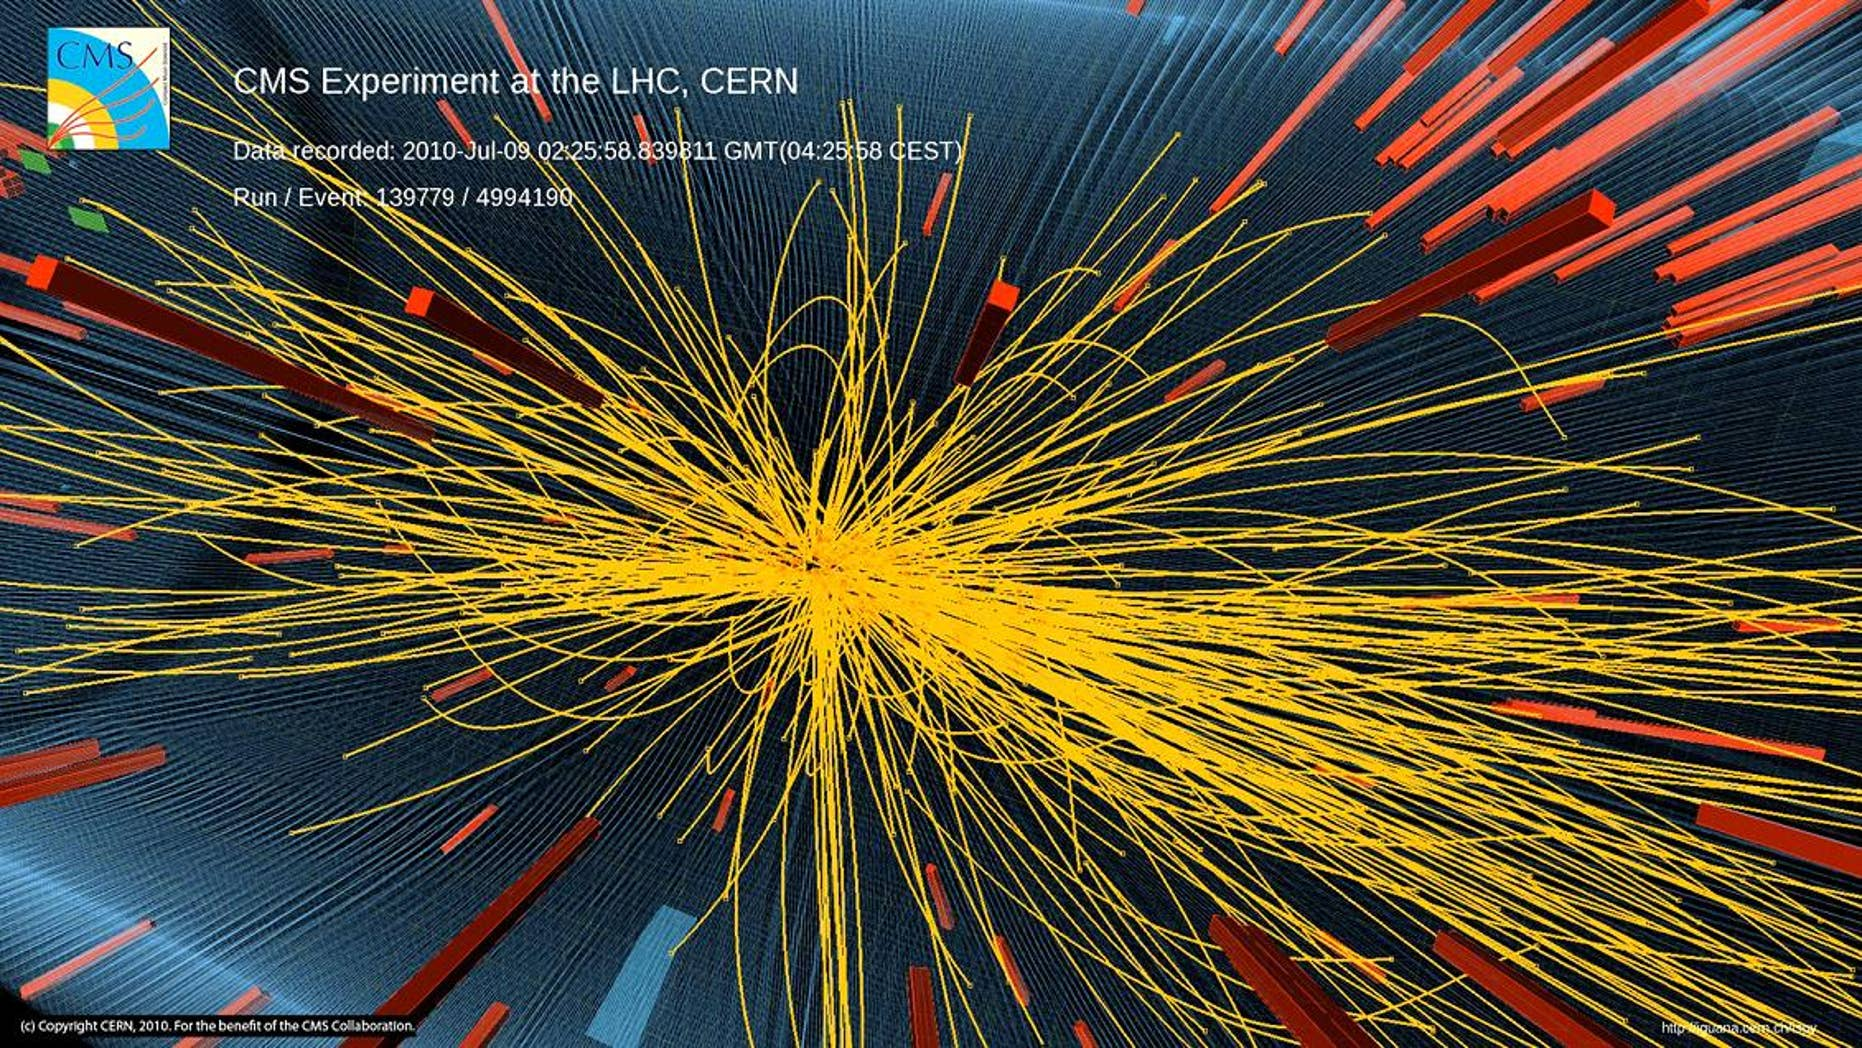 A proton-proton collision at the Large Hadron Collider particle accelerator at CERN laboratory in Geneva that produced more than 100 charged particles.